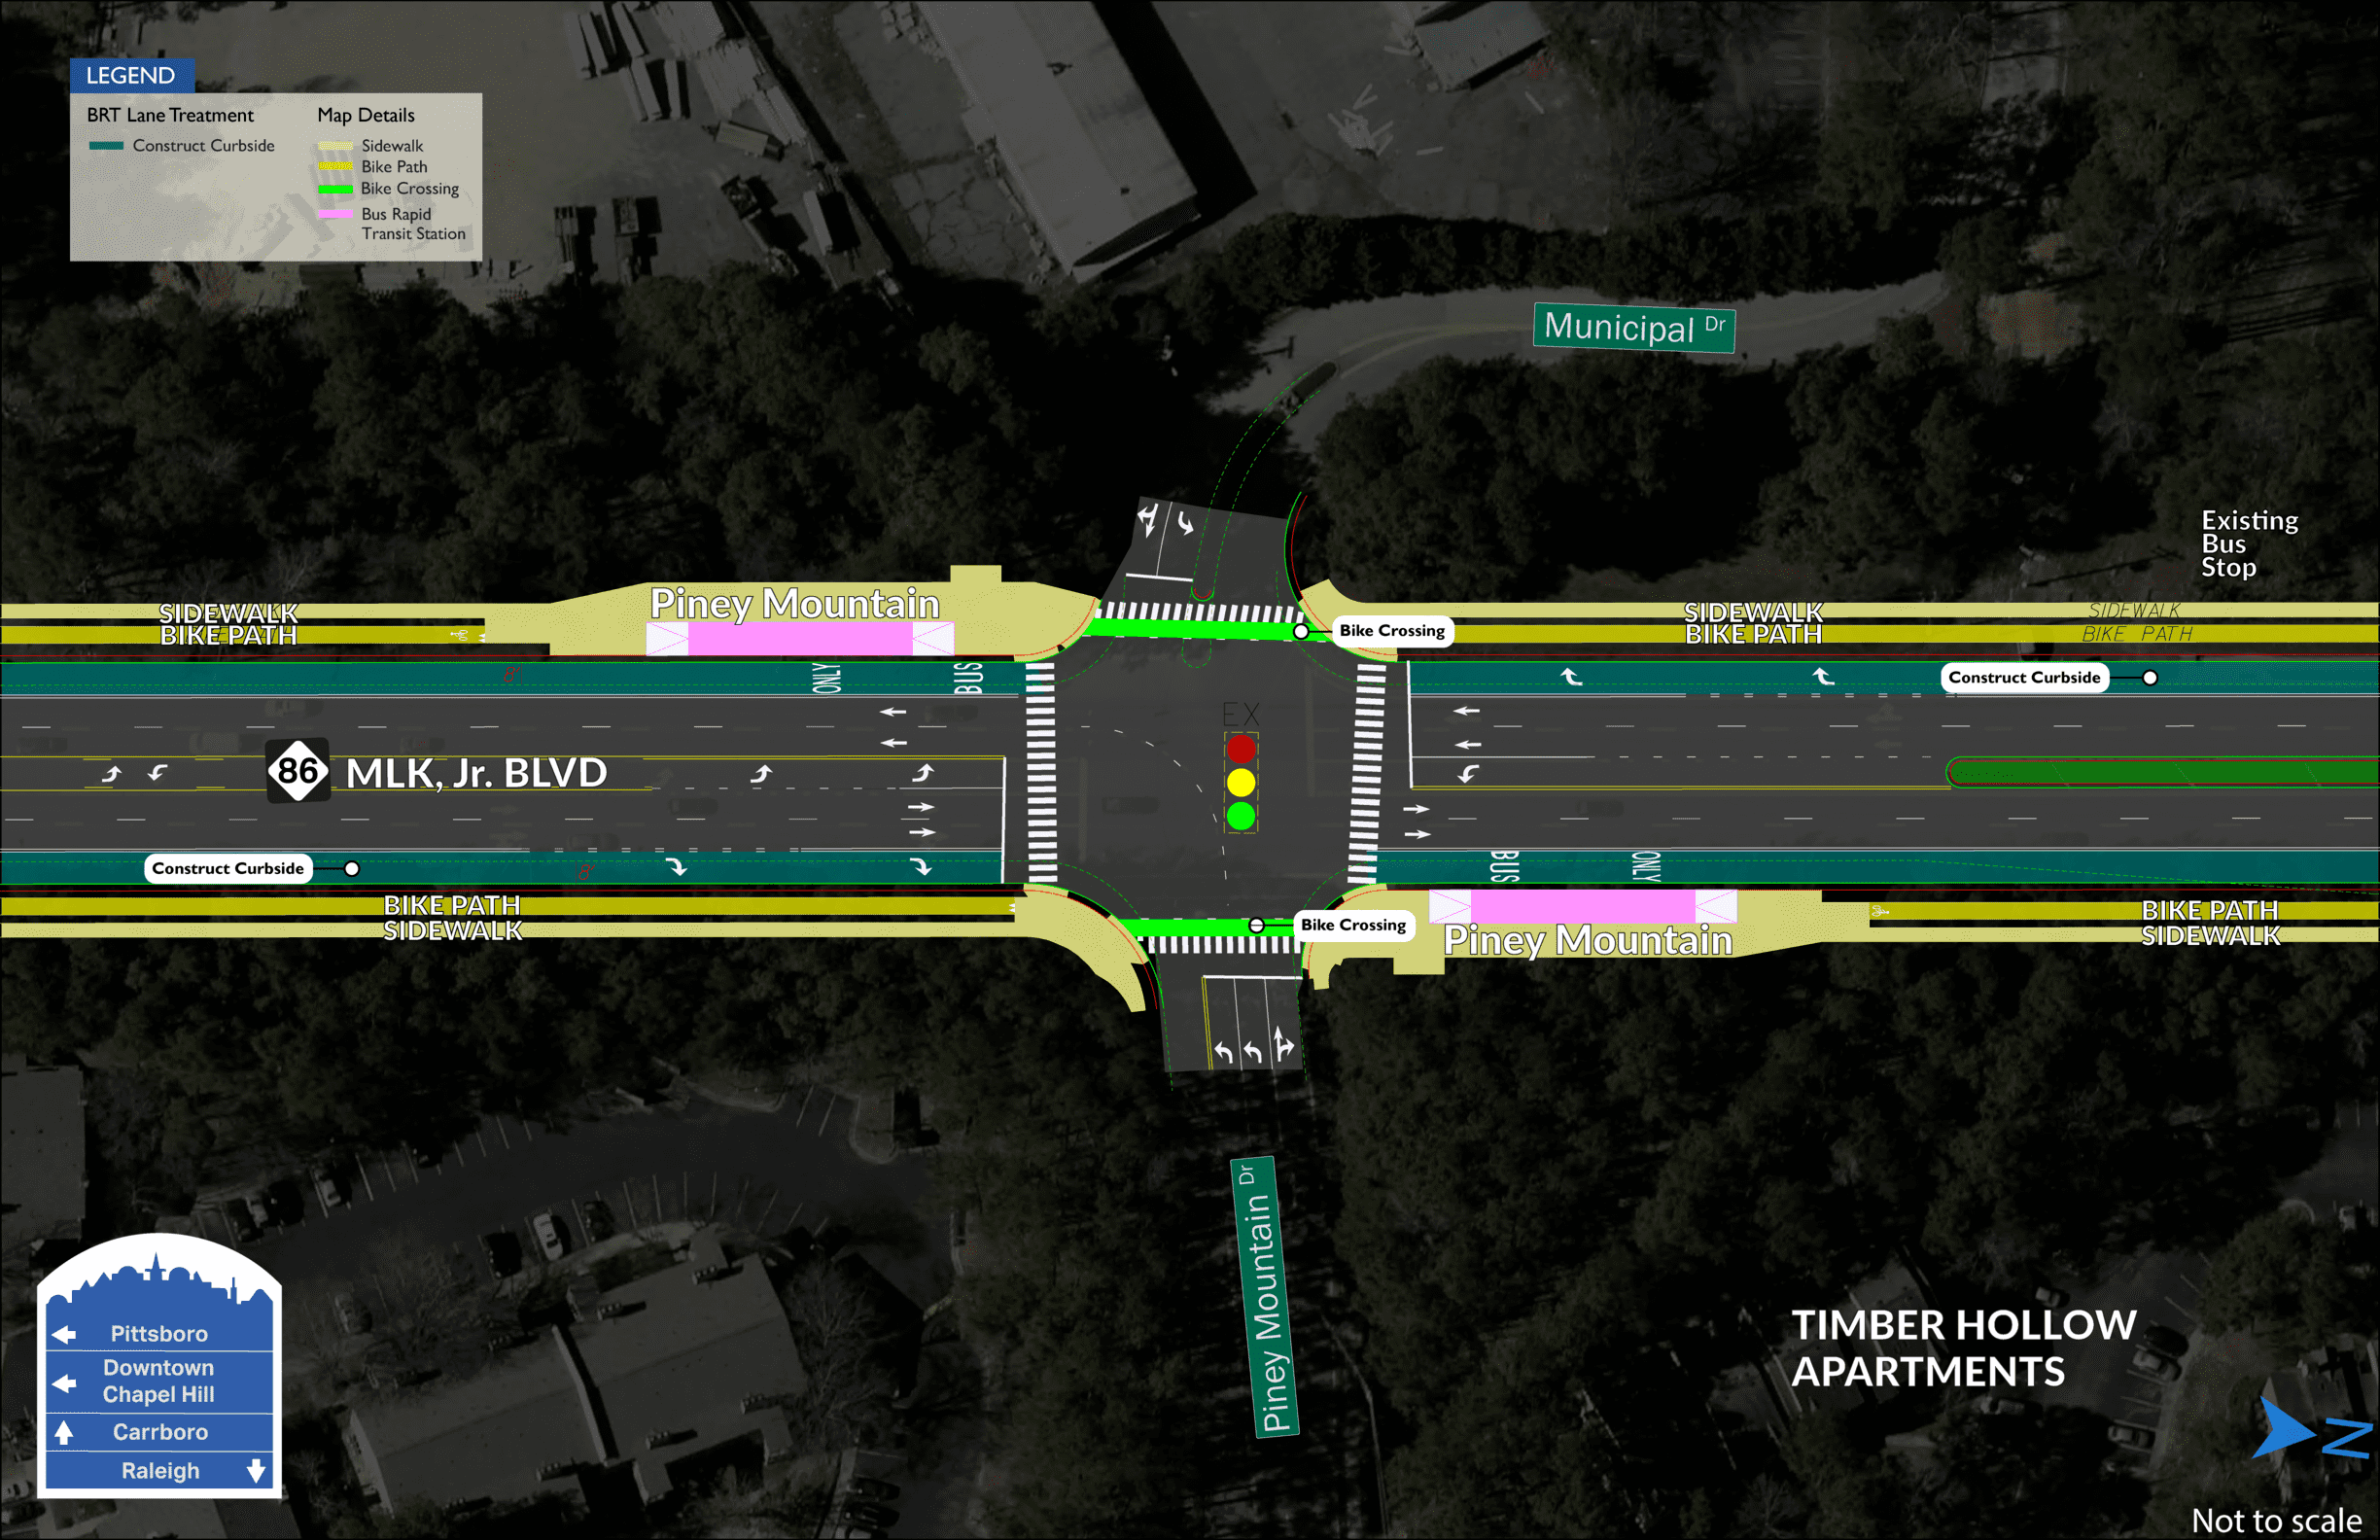 Piney Station BRT map showing two stations on both sides of MLK Jr. Boulevard, divided by Municipal Drive.